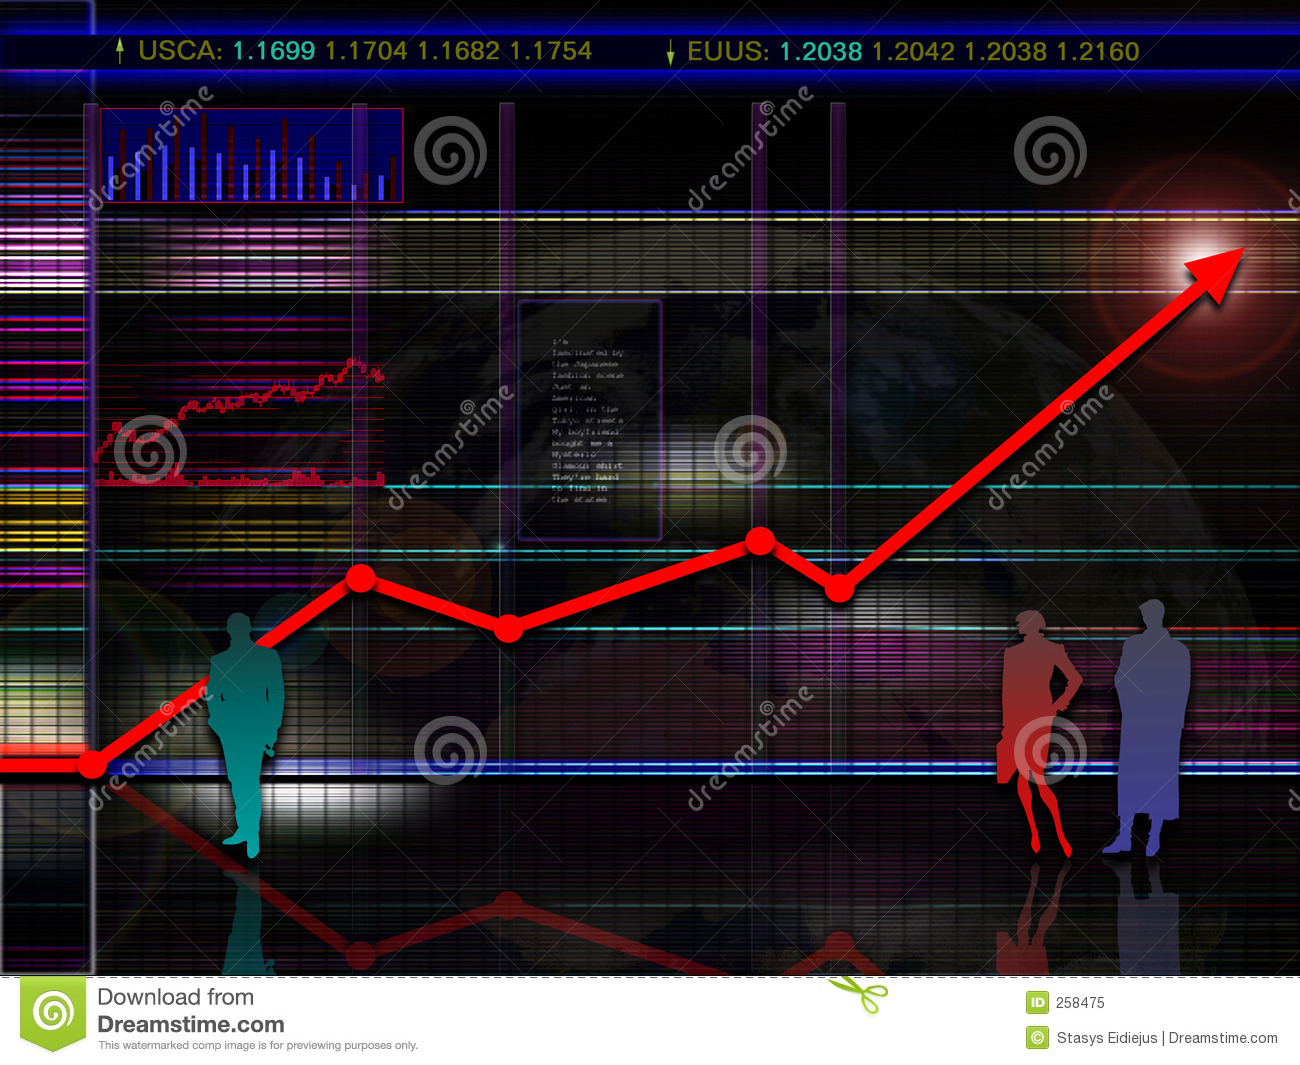 Abstract modern and/or futuristic stock and market chart scenario